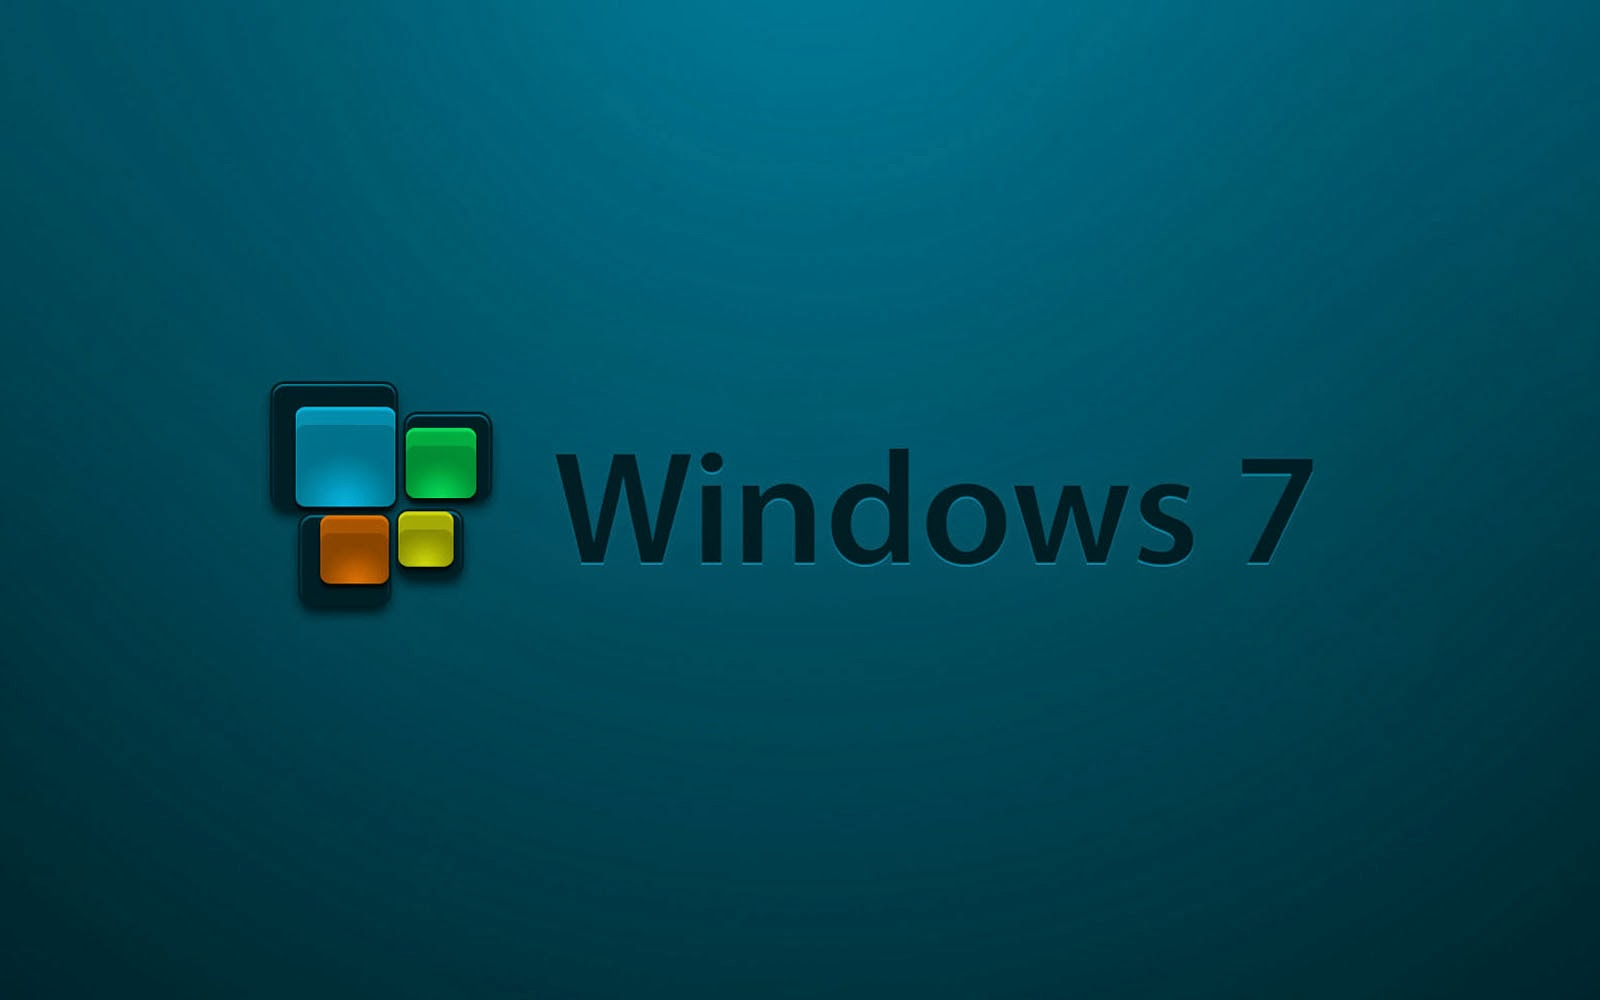 Windows 7 HD Wallpapers hhhh